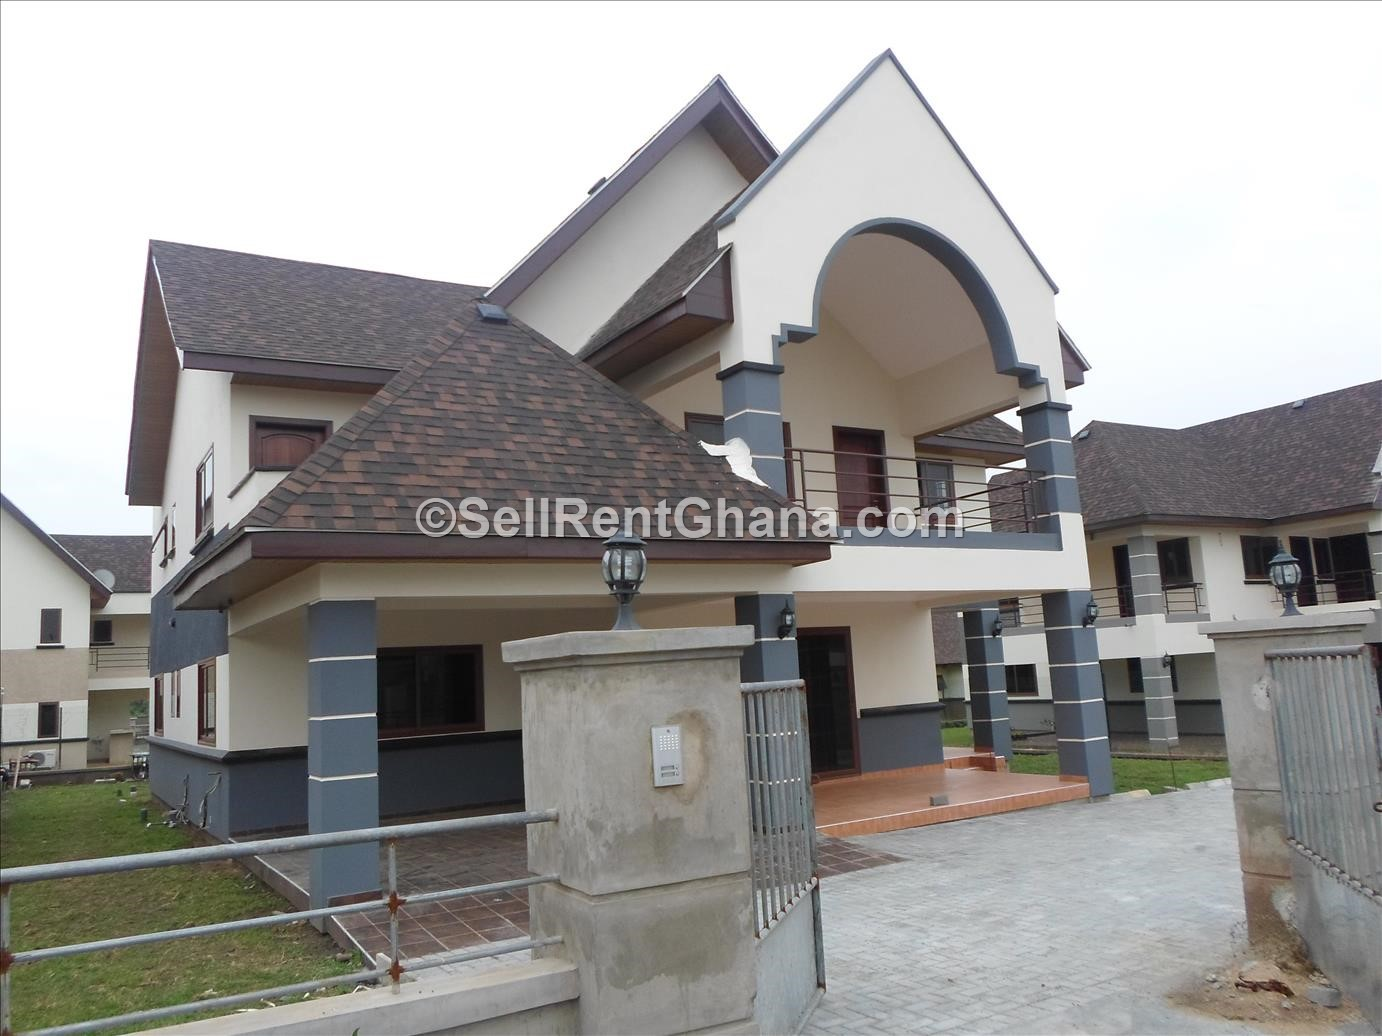 4 bedroom townhouse for sale rent tema sellrent ghana. Black Bedroom Furniture Sets. Home Design Ideas